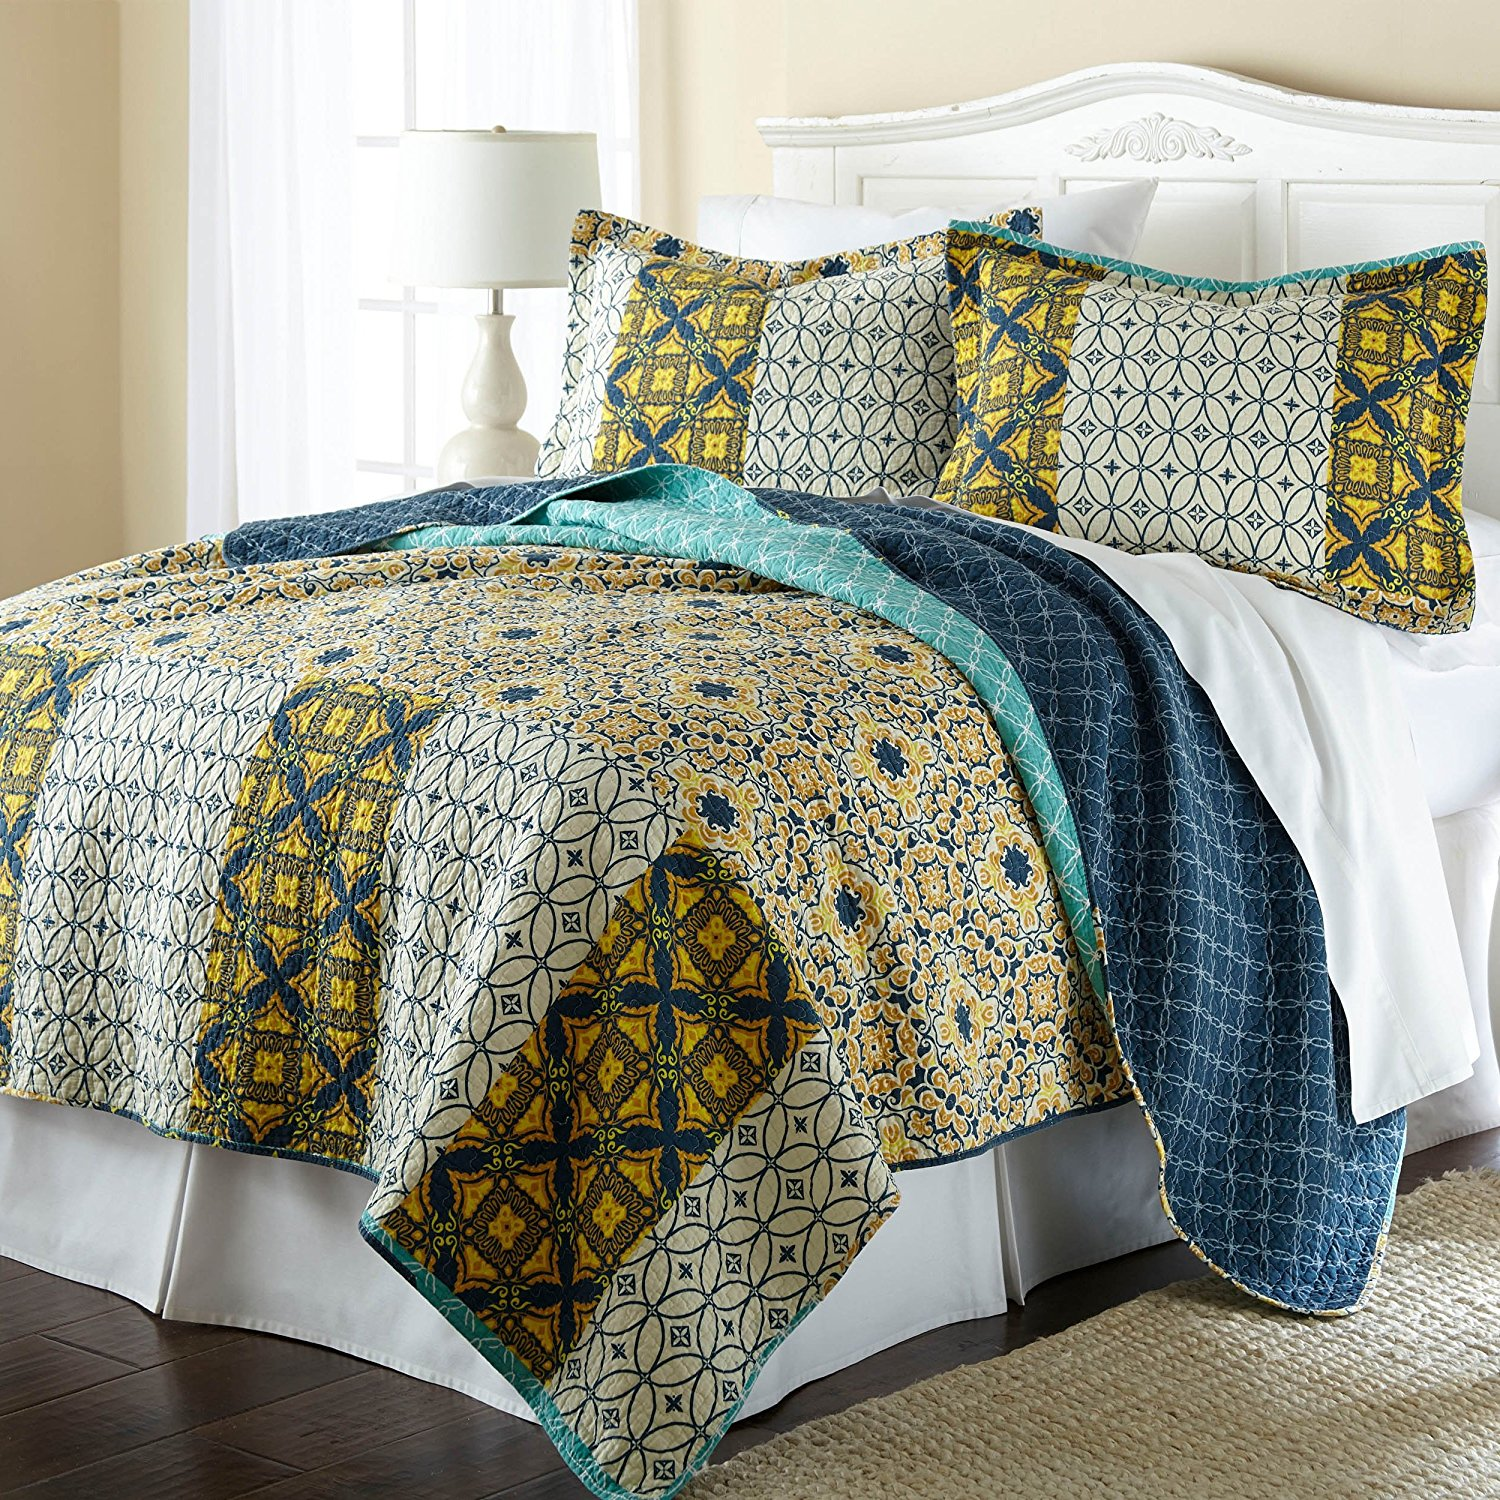 3 Piece Full/Queen Lovely Mid-Century Geometric Pattern Quilt Set, Traditional Stunning Modern Graphic Patchwork Design, Vibrant Abstract Printed Theme Reversible Bedding, Adorable Yellow, Multi Color